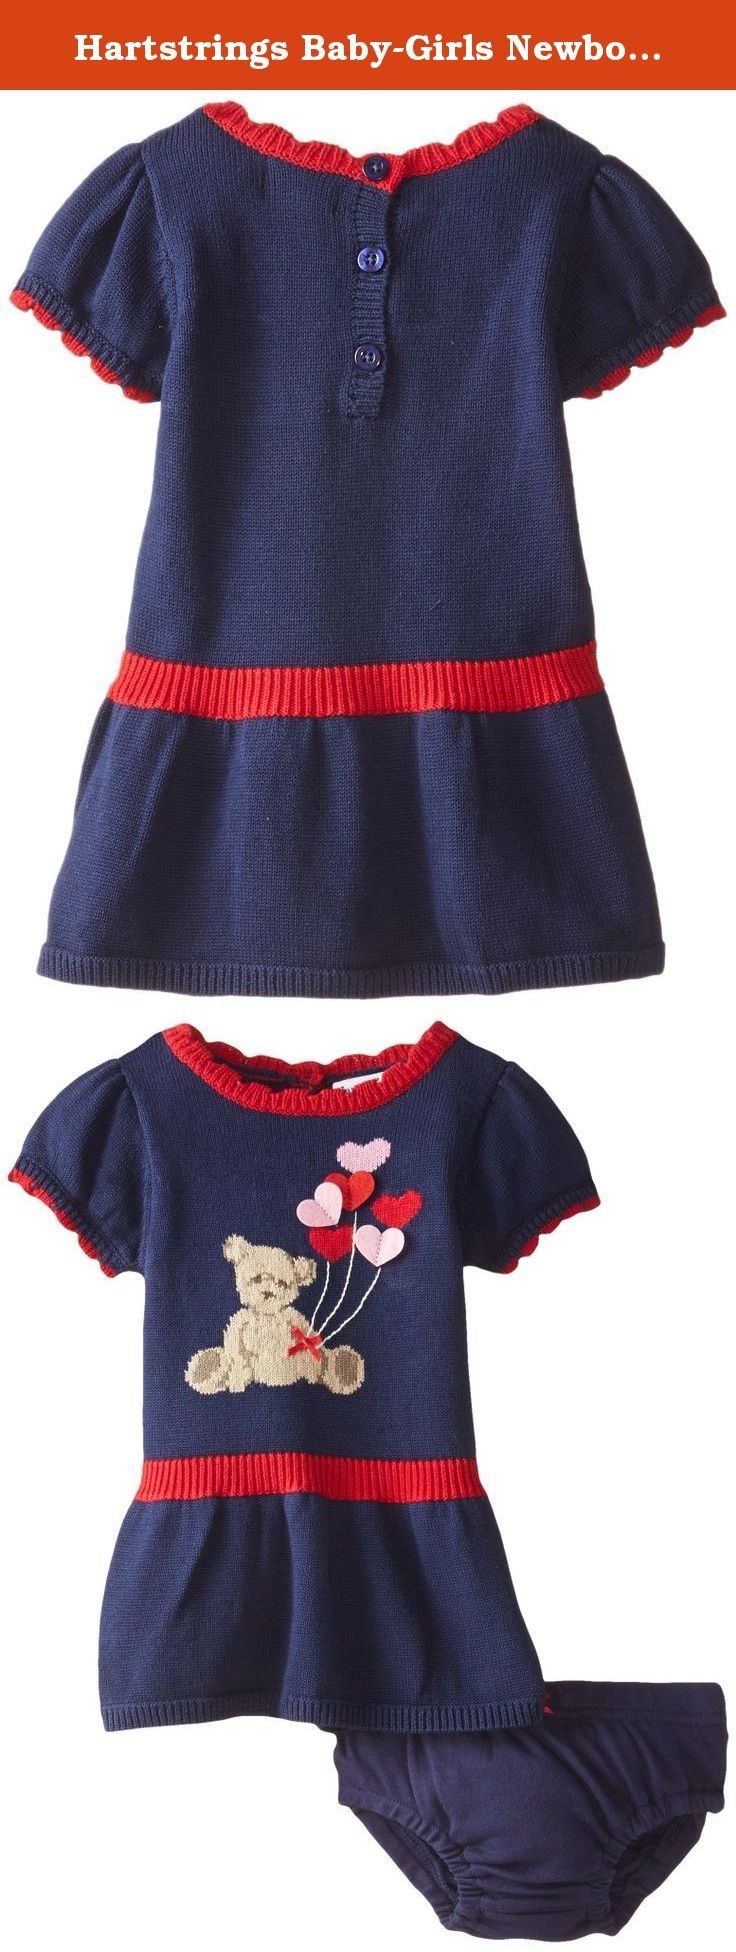 Hartstrings Baby-Girls Newborn Bear Sweater Dress and Panty Set, China Blue, 0-3 Months. Baby girls cotton sweater dress and diaper cover set.